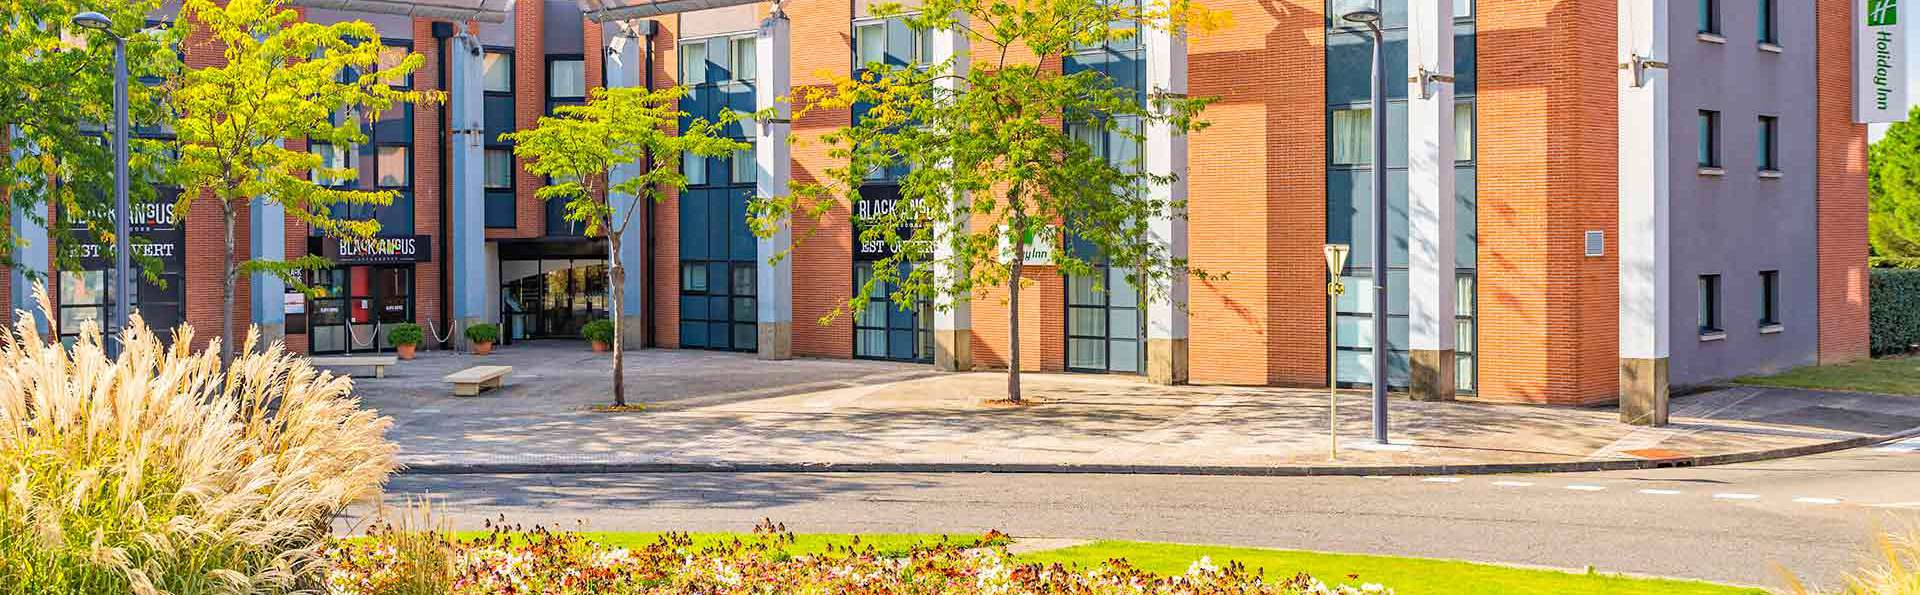 Holiday Inn Toulouse Airport  - EDIT_FRONT_01.jpg